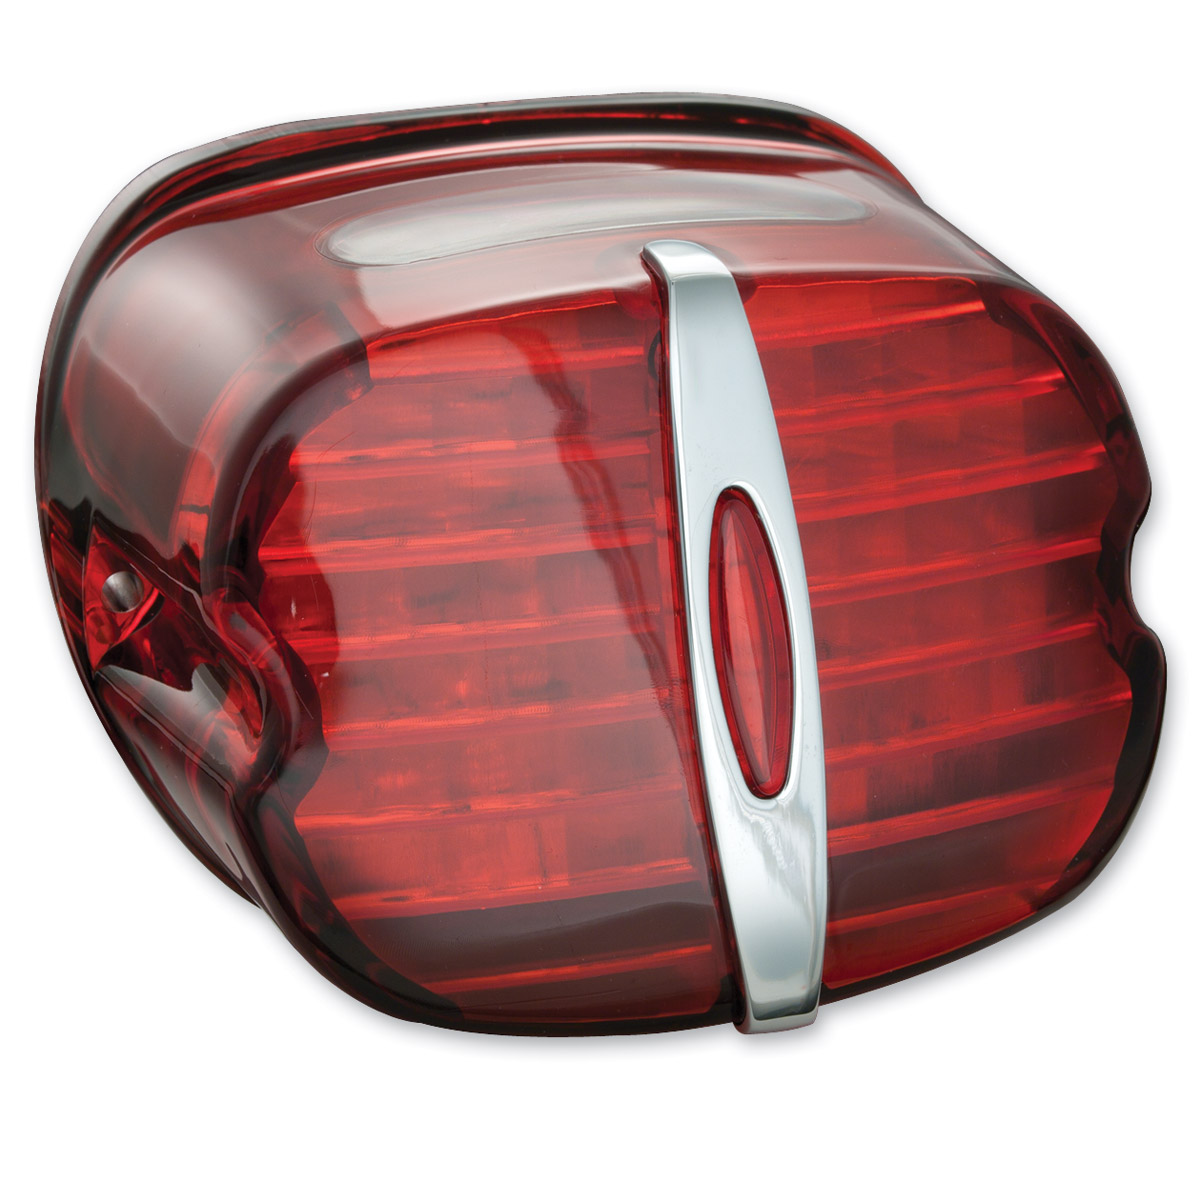 Kuryakyn Deluxe Red LED Taillight Conversion